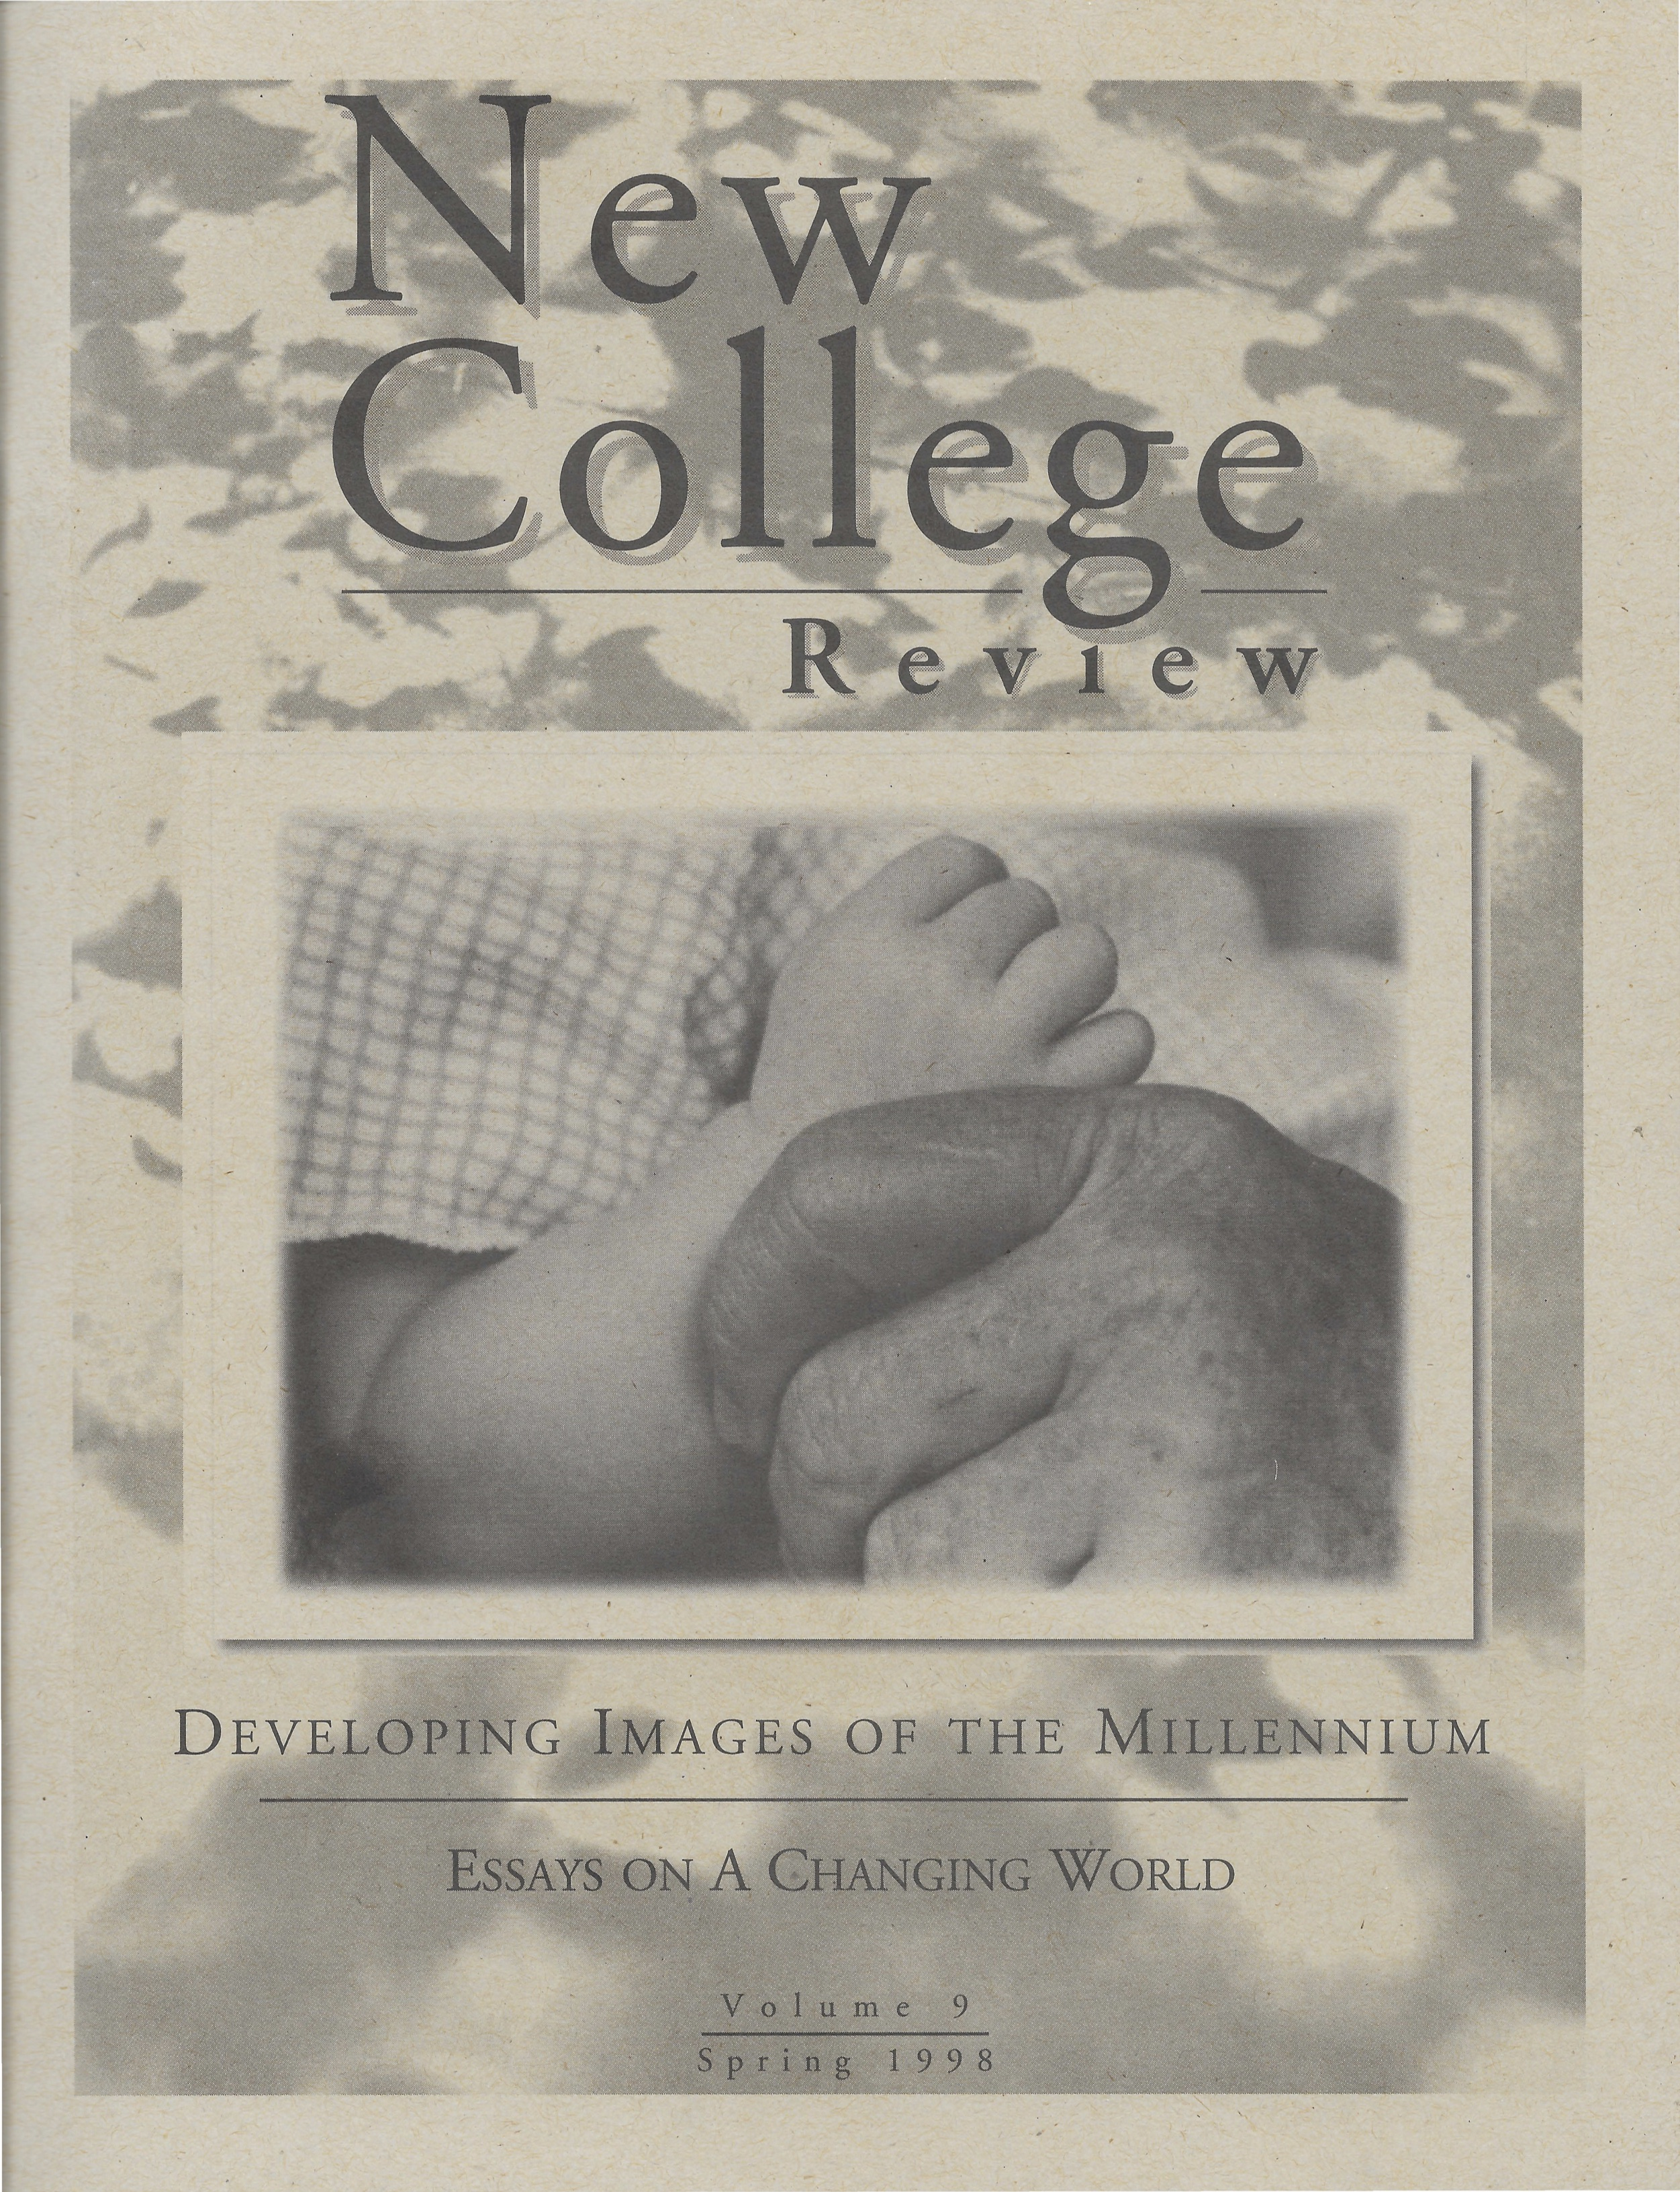 Cover for New College Review issue from Spring 1998 titled